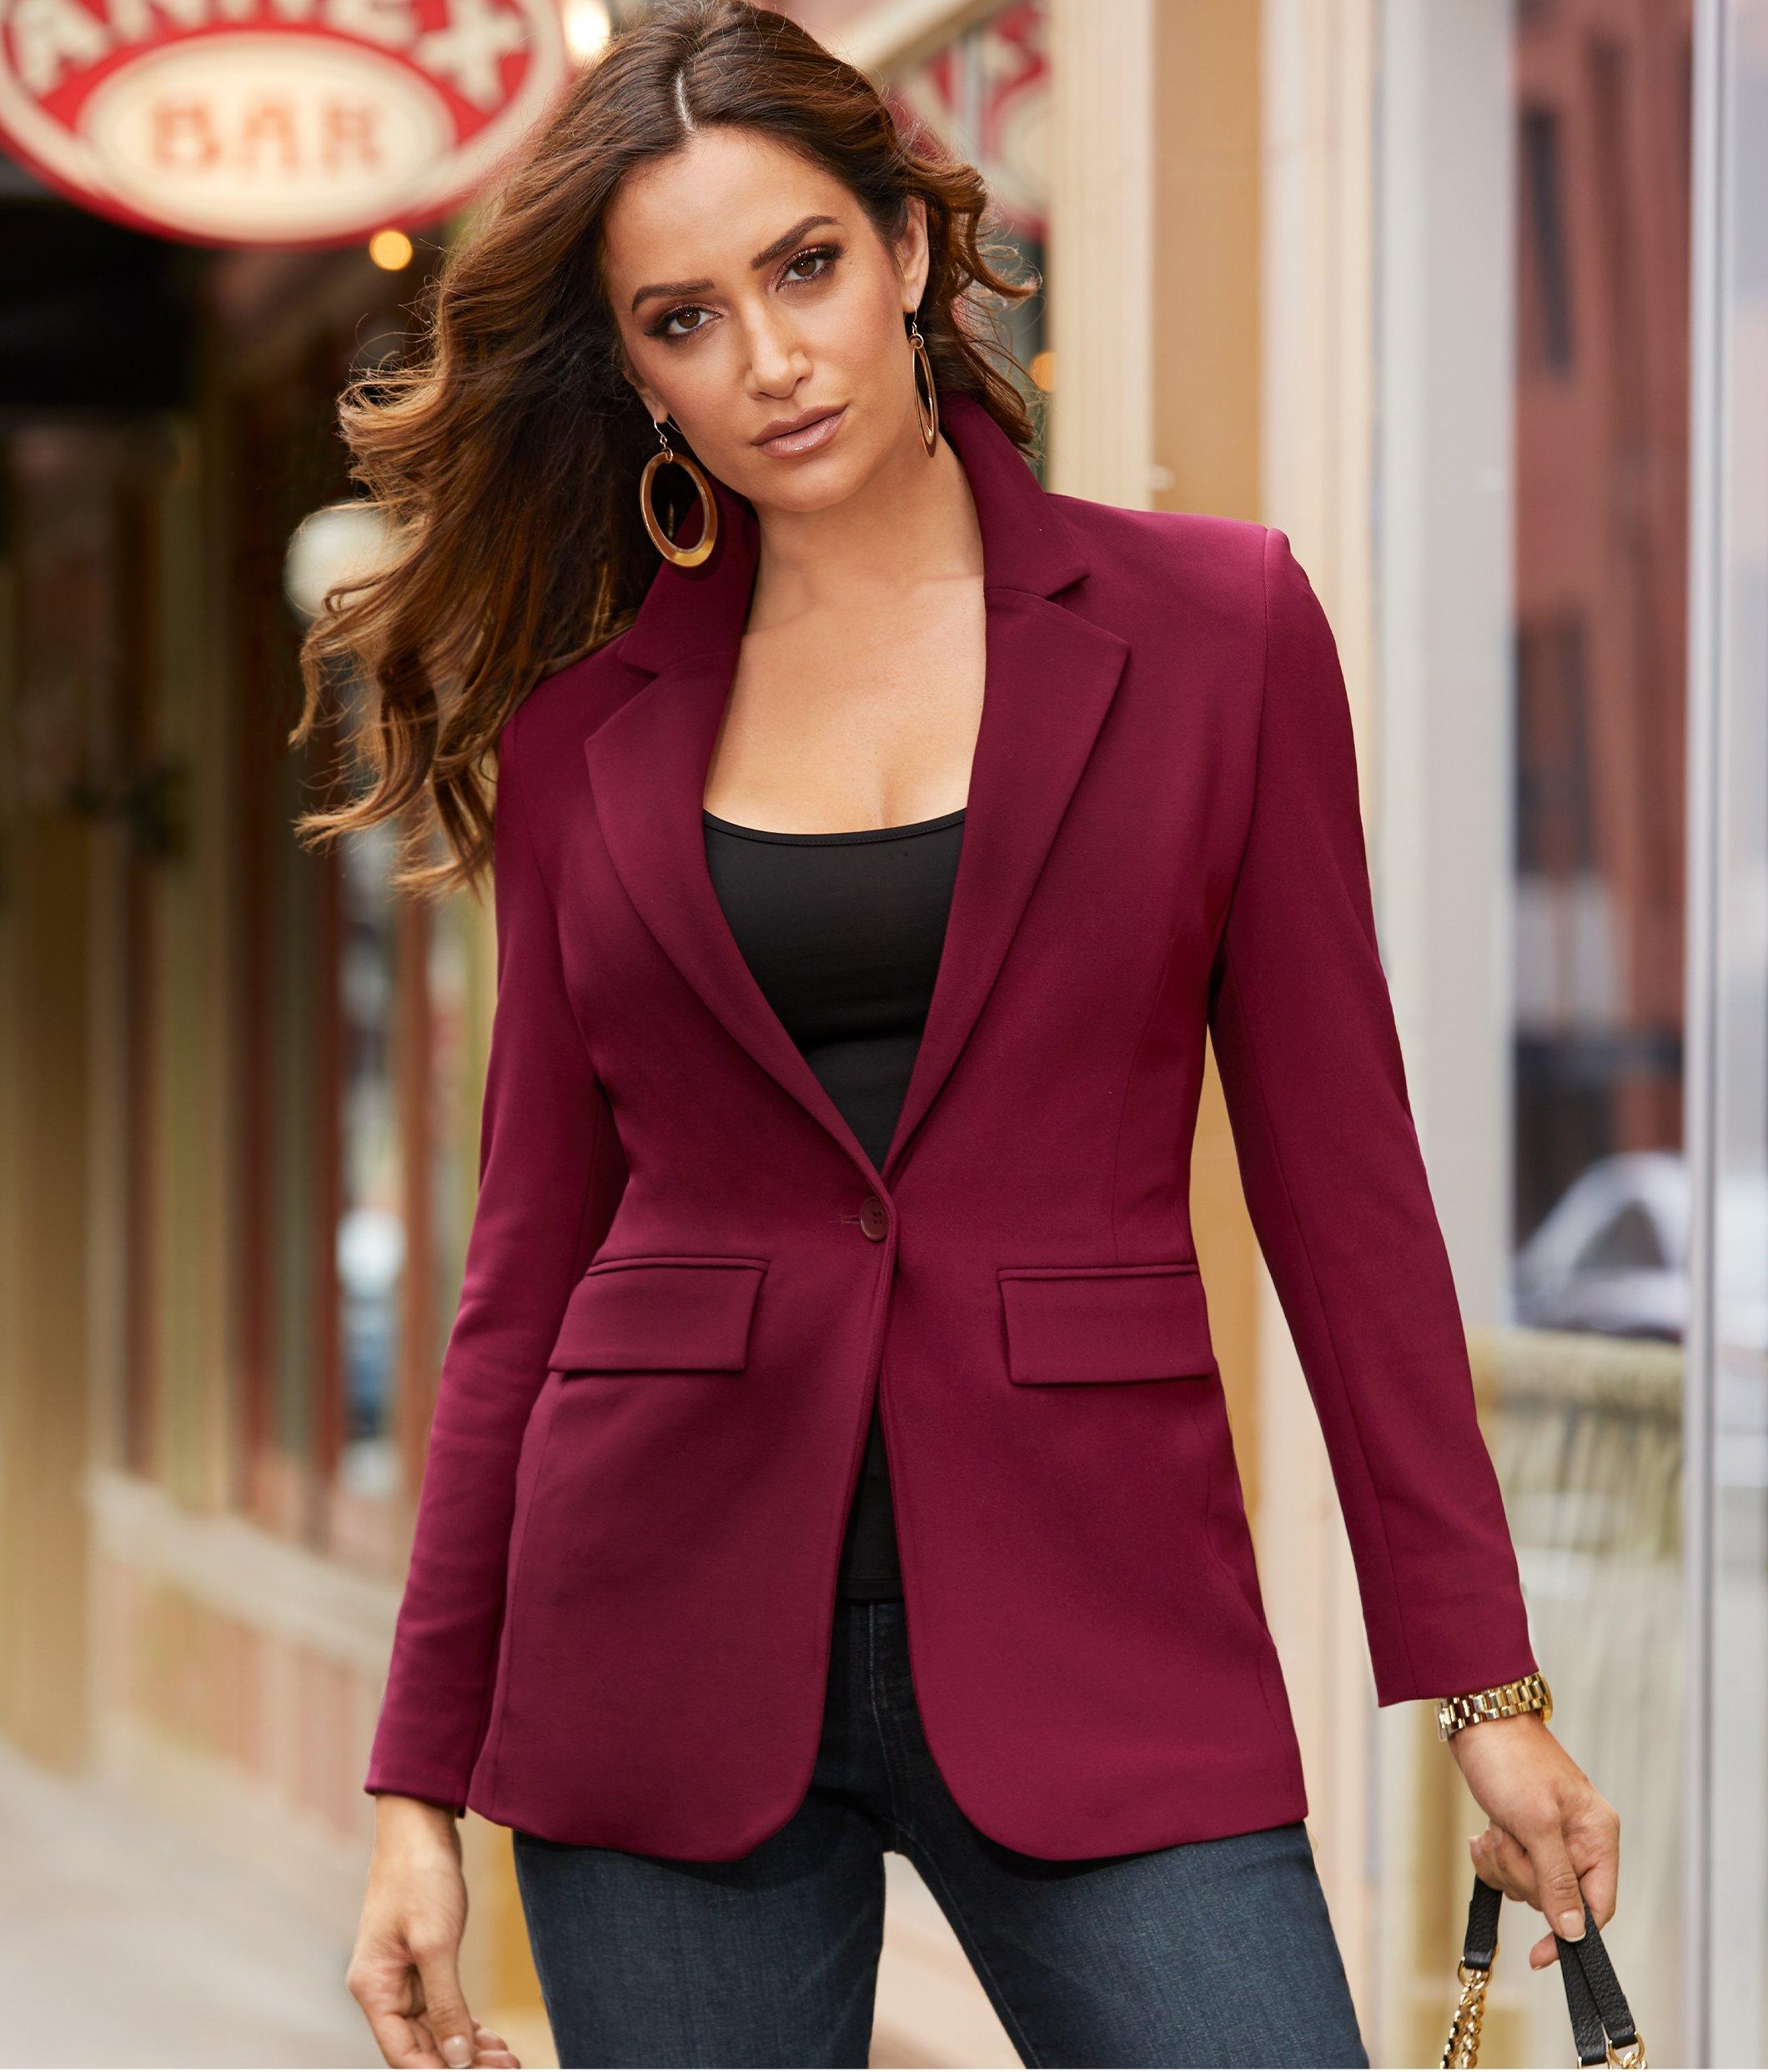 model wearing wine colored blazer over a black tank top and jeans